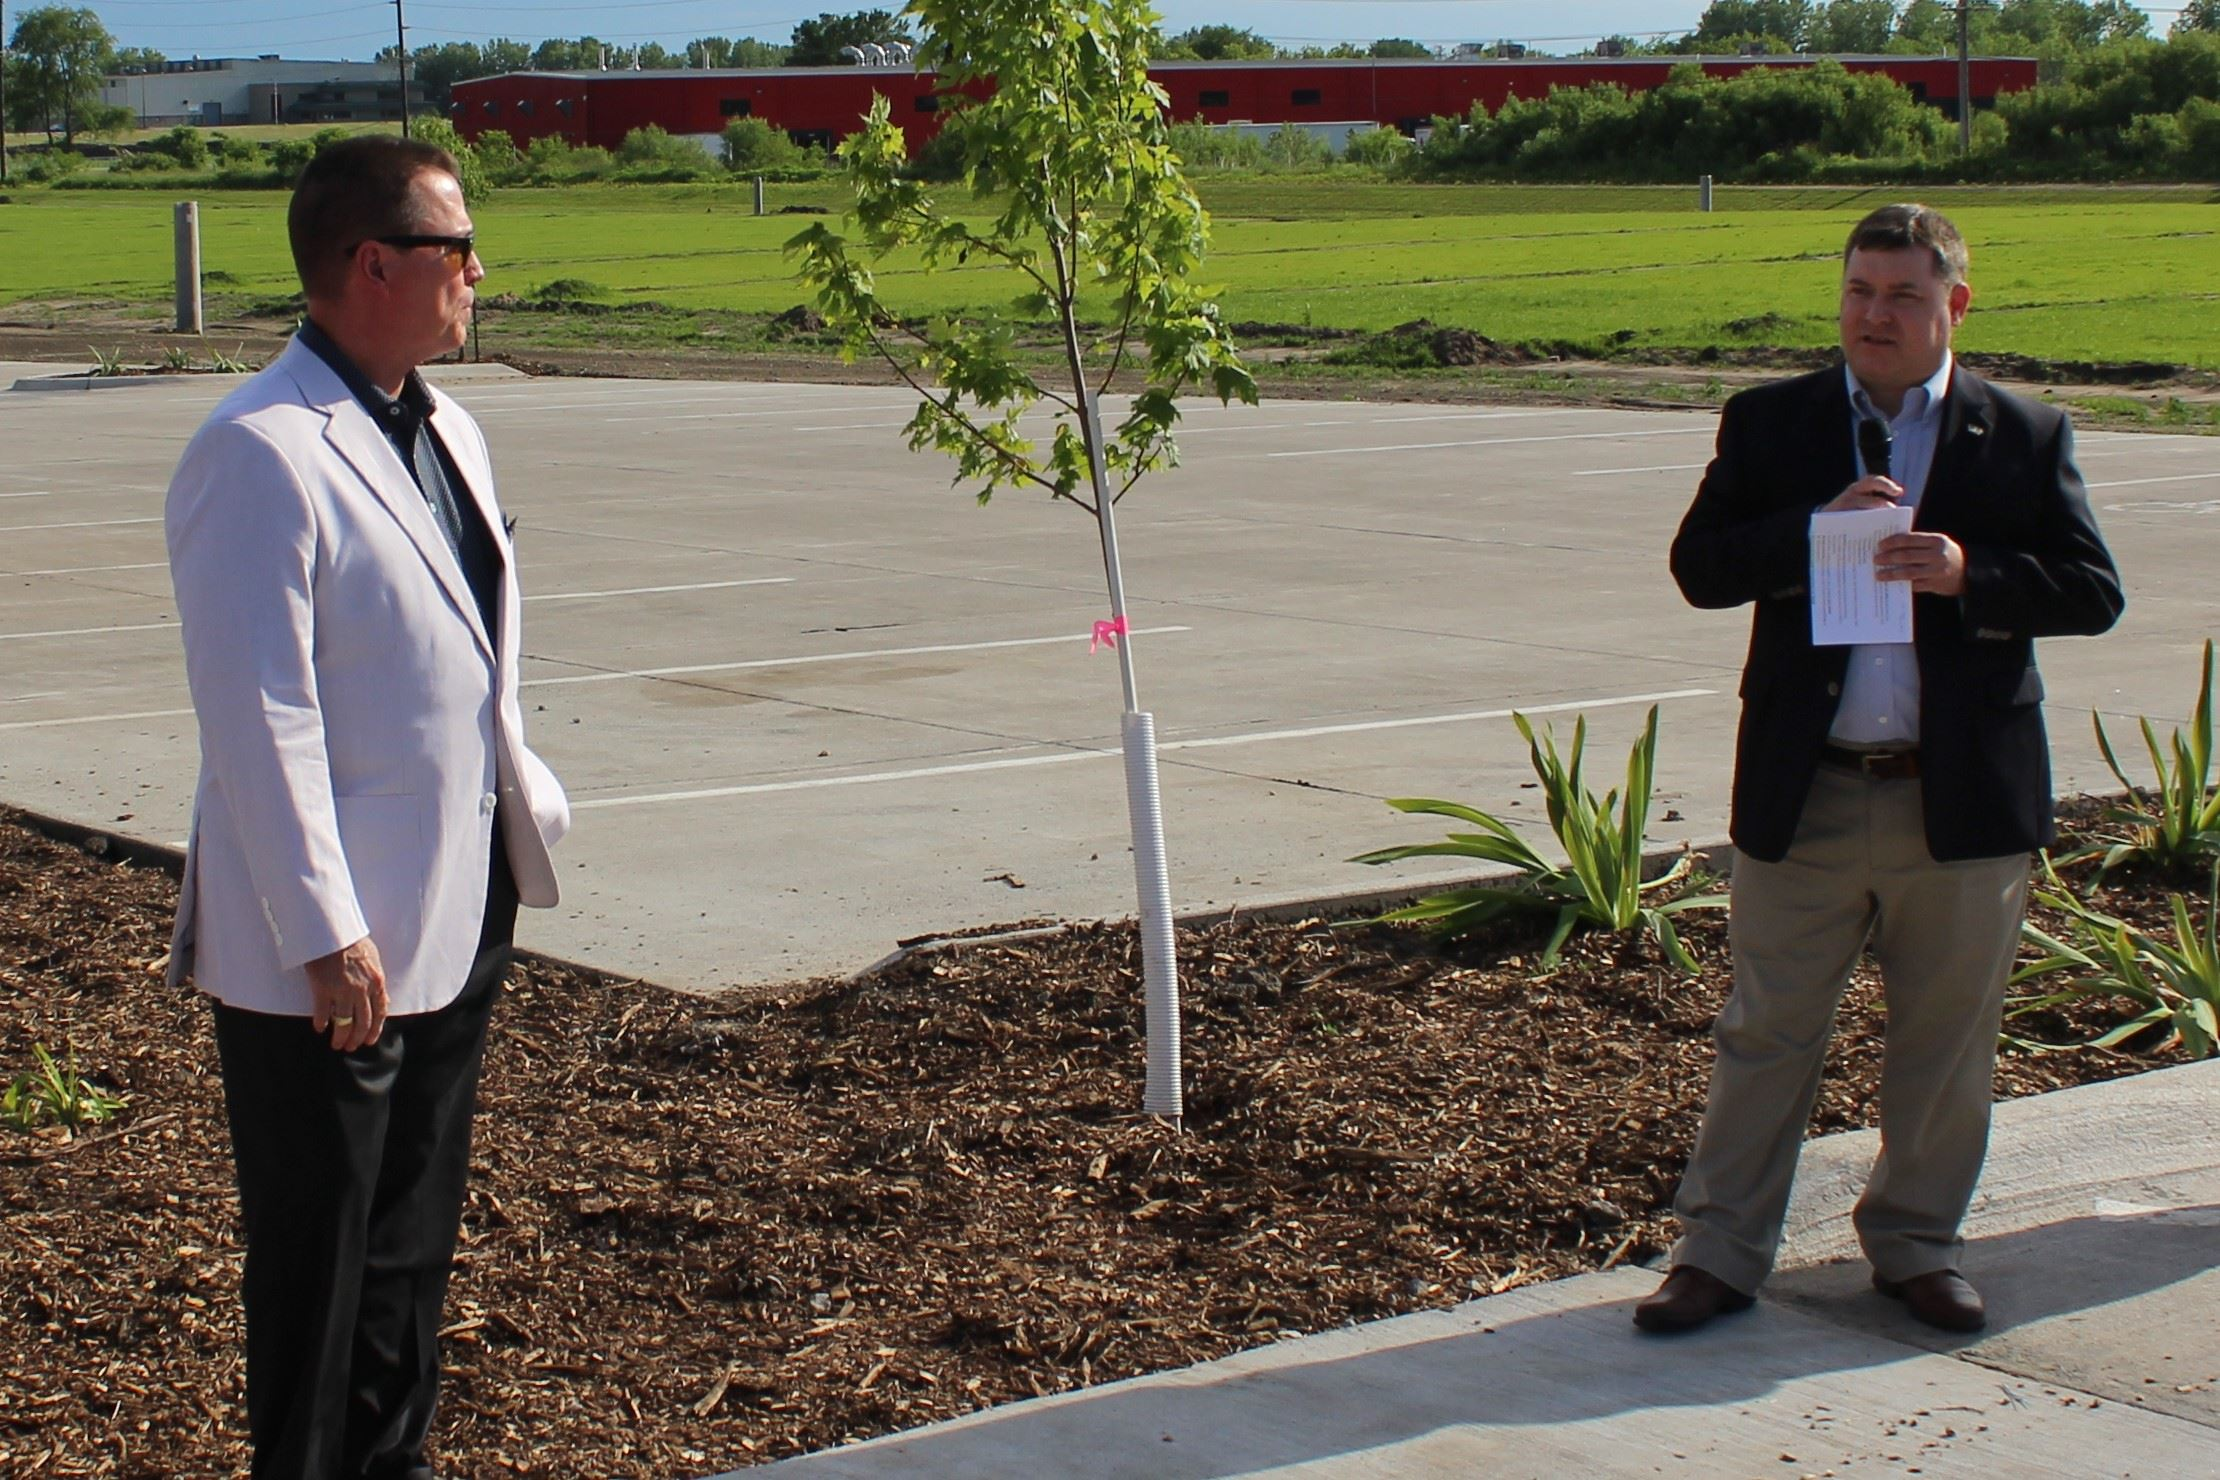 Gage Kent, Gregg Mandsager at Houser Street ribbon cutting June 5, 2019 (JPG)